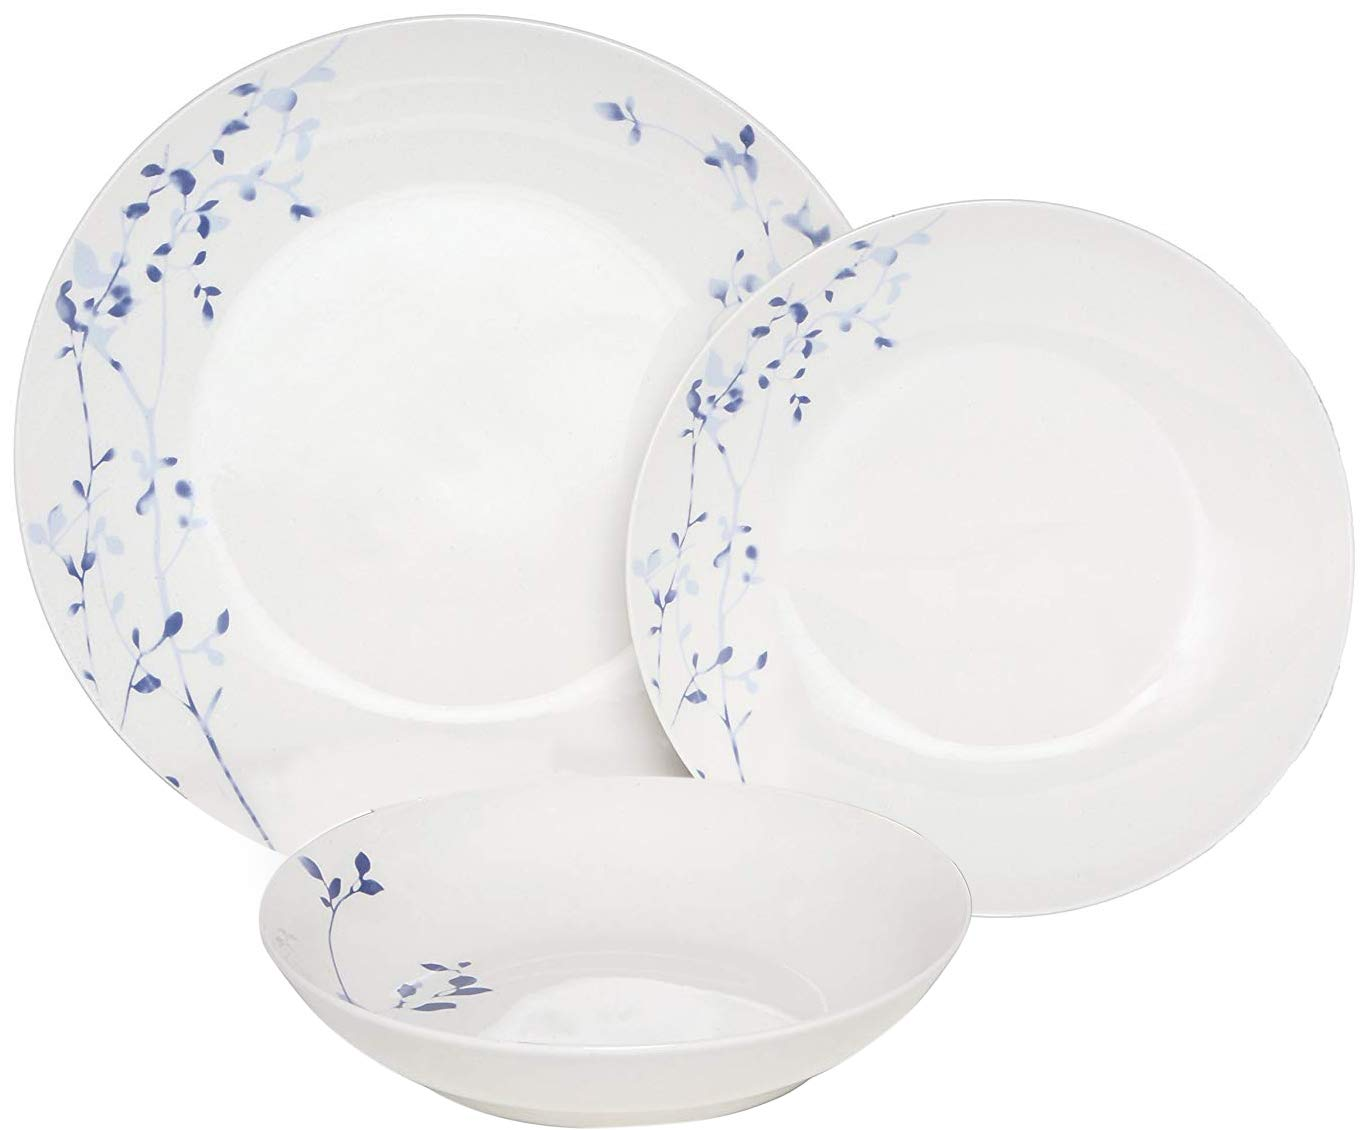 Melange Coupe 36 Piece Porcelain Dinner Set | Indigo Garden Collection | Service for 12 | Microwave, Dishwasher & Oven Safe | Dinner Plate, Salad Plate, Soup Bowl & Mug (12 Each)